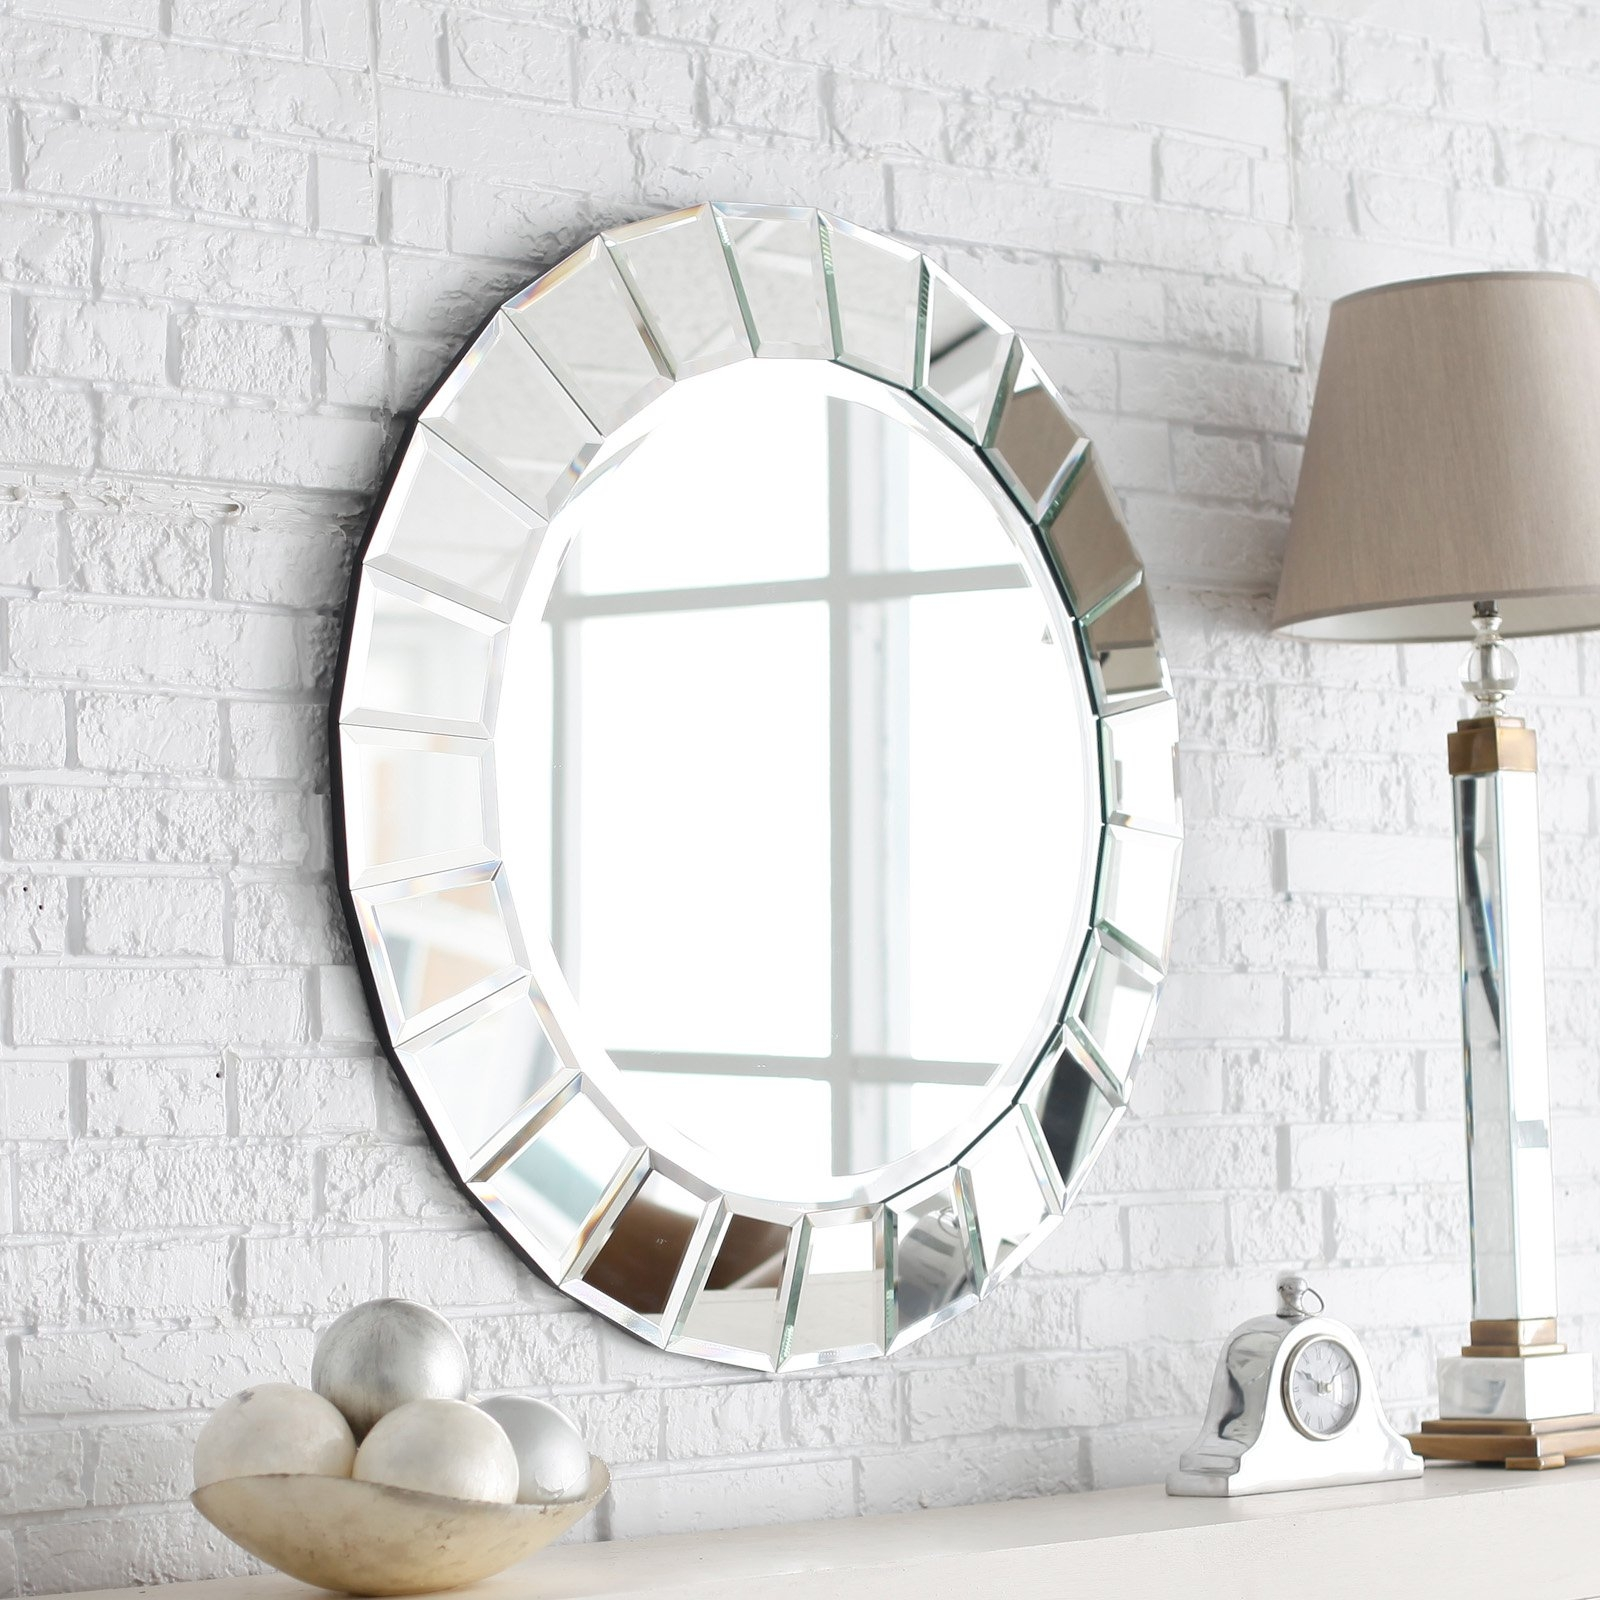 Dcor Wonderland Frameless Crystal Wall Mirror 235w X 315h In In Round Venetian Mirror (View 3 of 15)